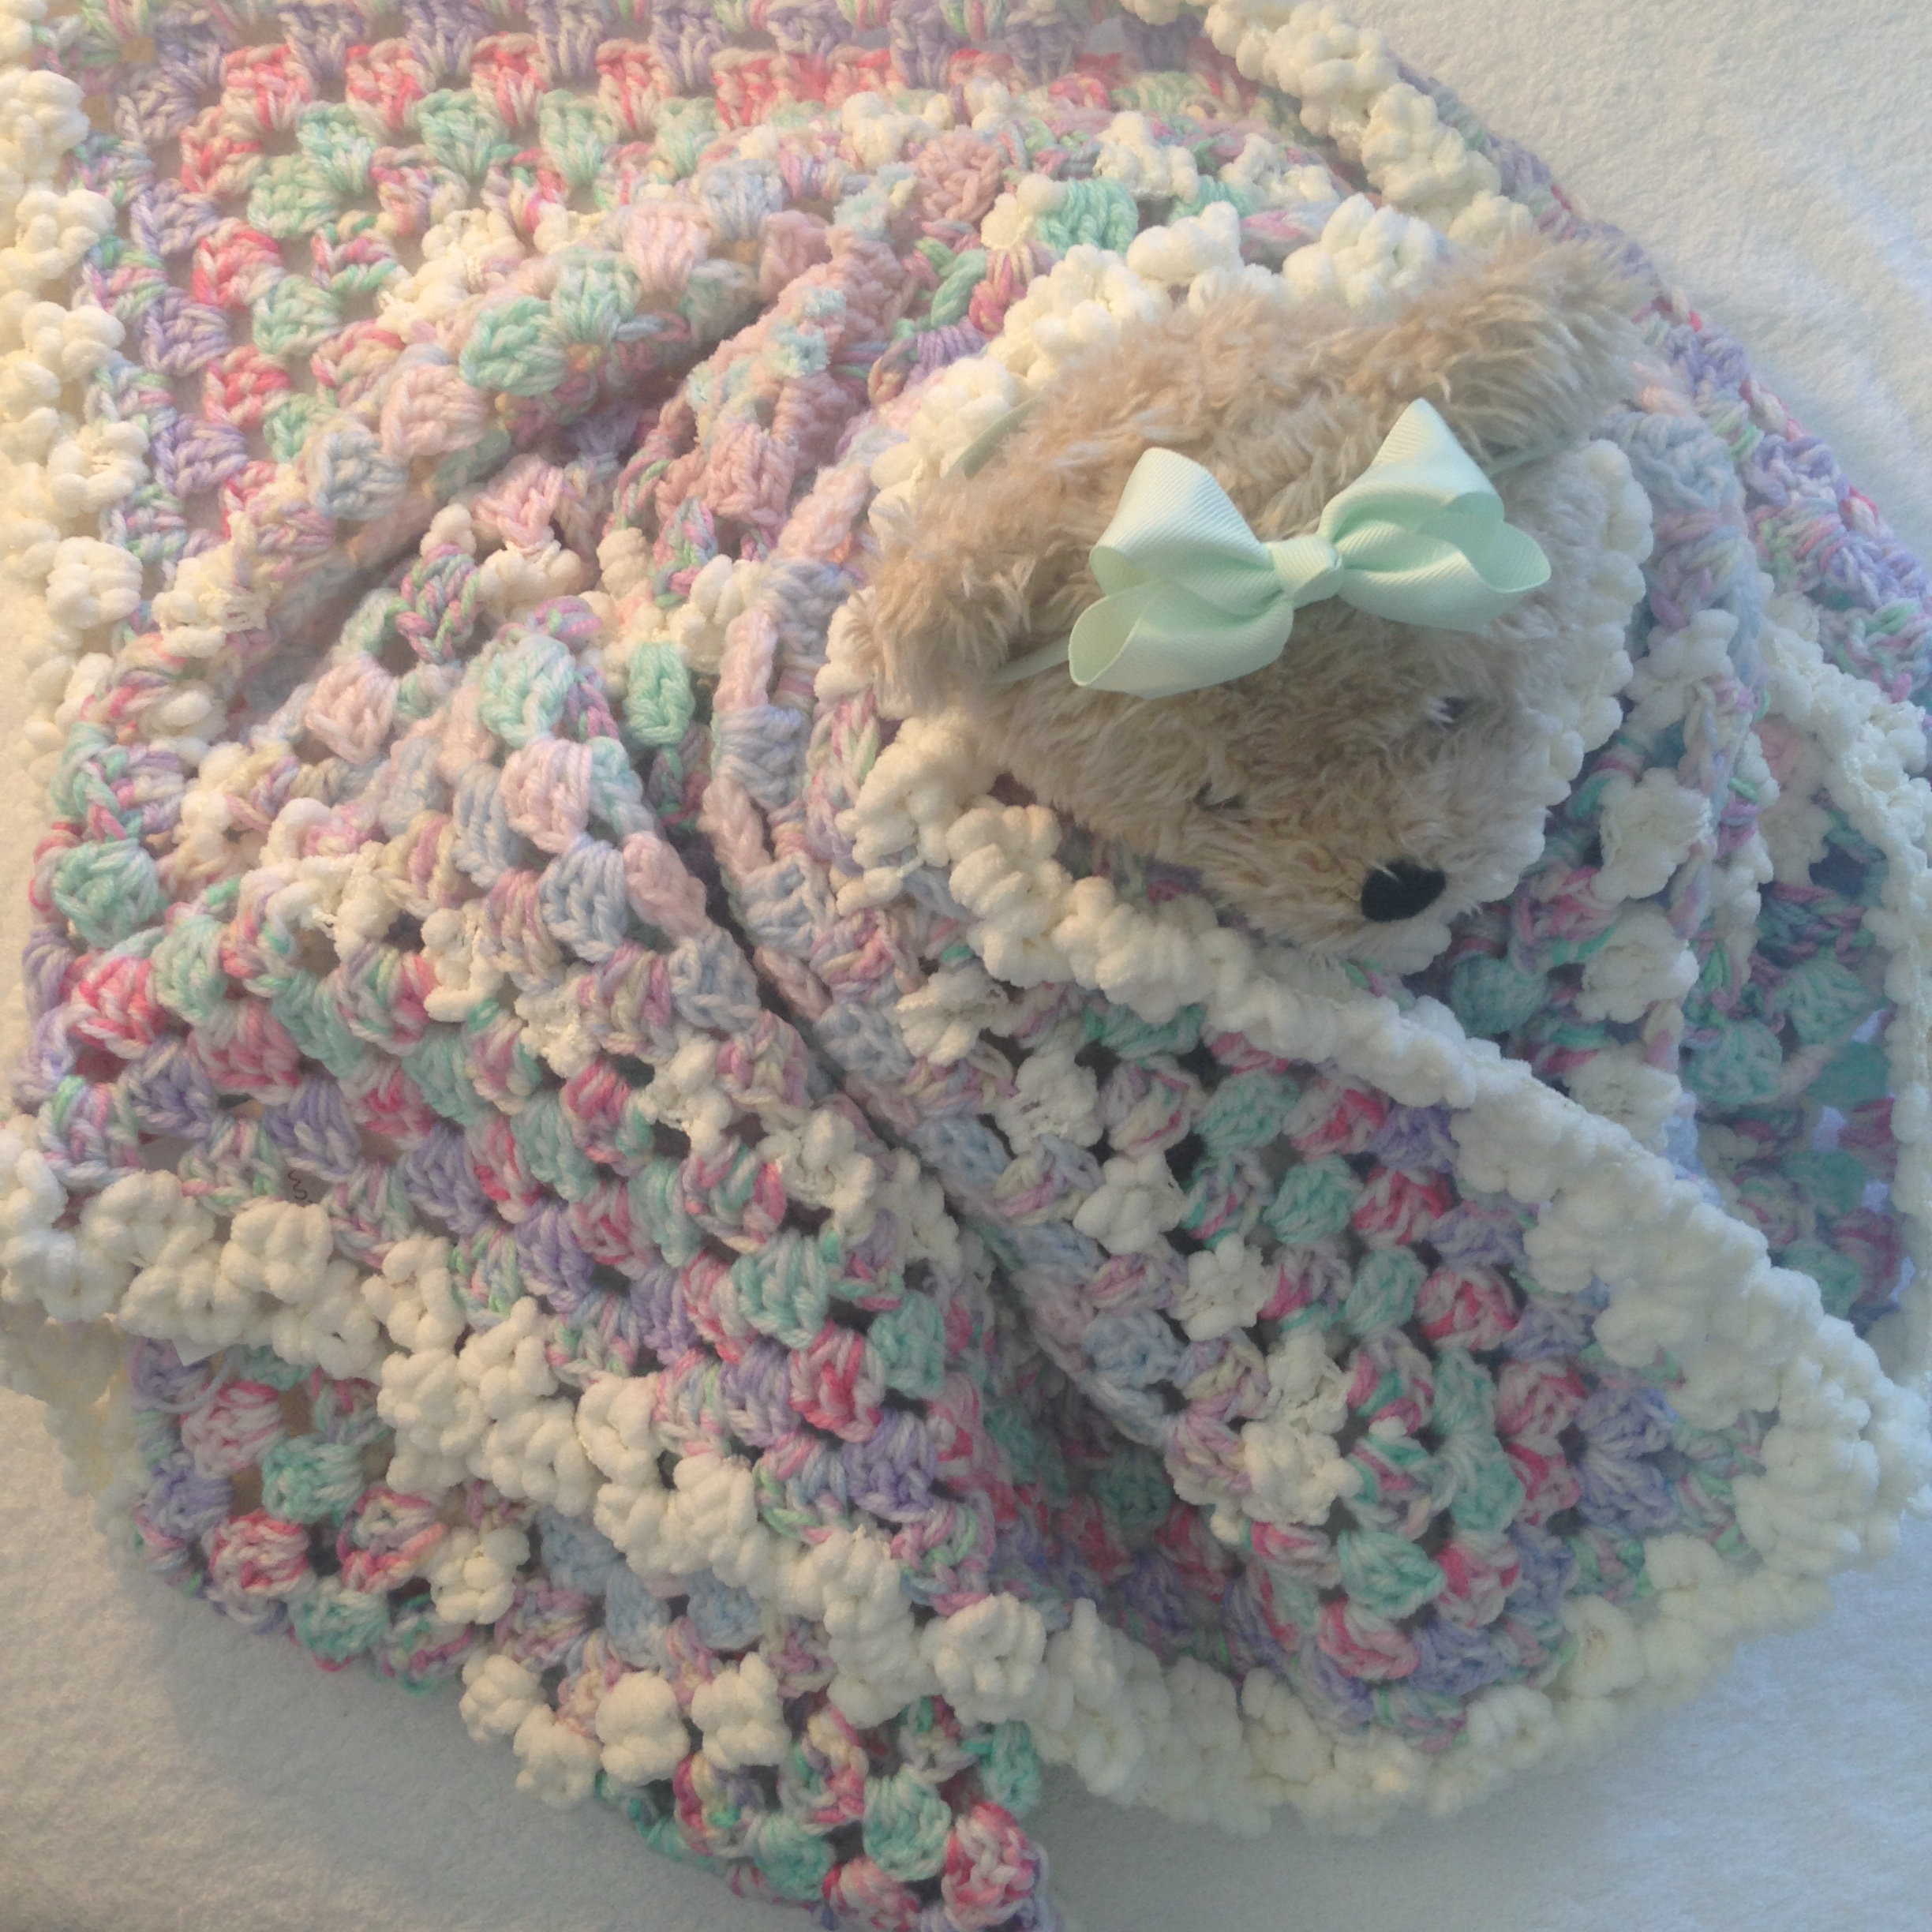 Bubba Cuddle Blankee Homemade Crochet Throw Rug For Pram Cot Or Bed 115cm